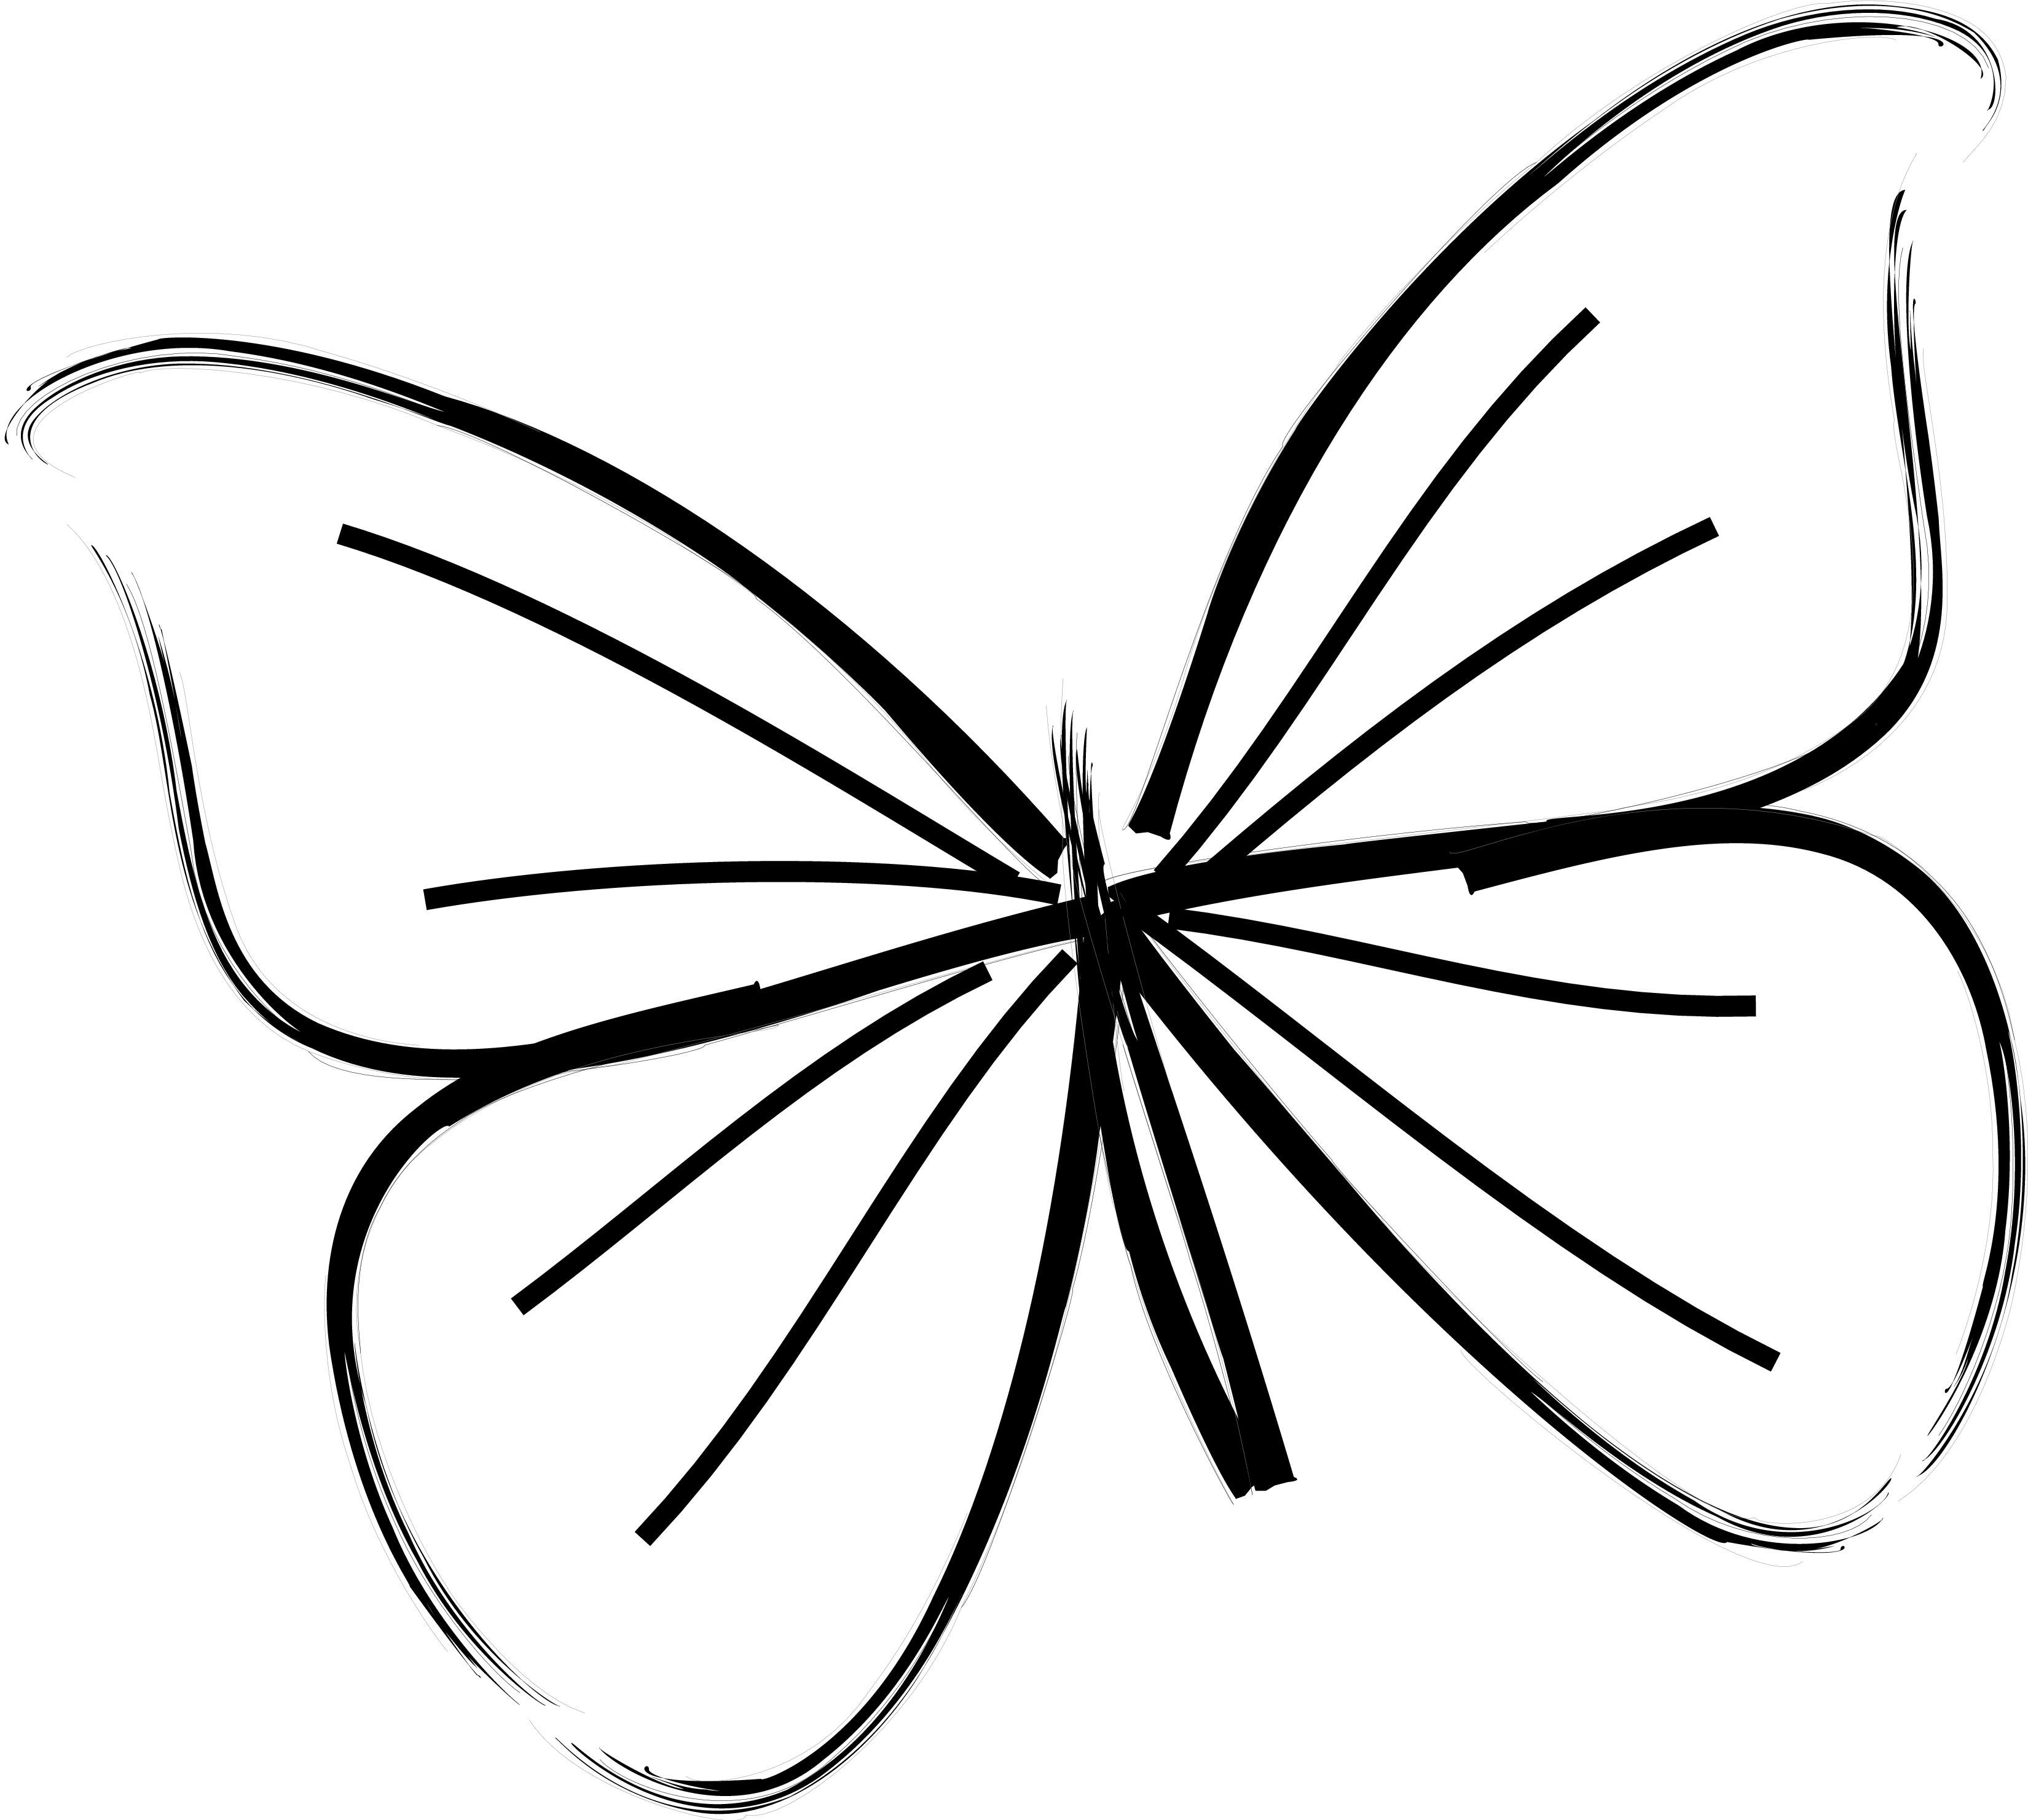 Butterfly Design Clipart Simple 4 3300 X 2962 Dumielauxepices Net Easy Butterfly Drawing Butterfly Clip Art Butterfly Drawing